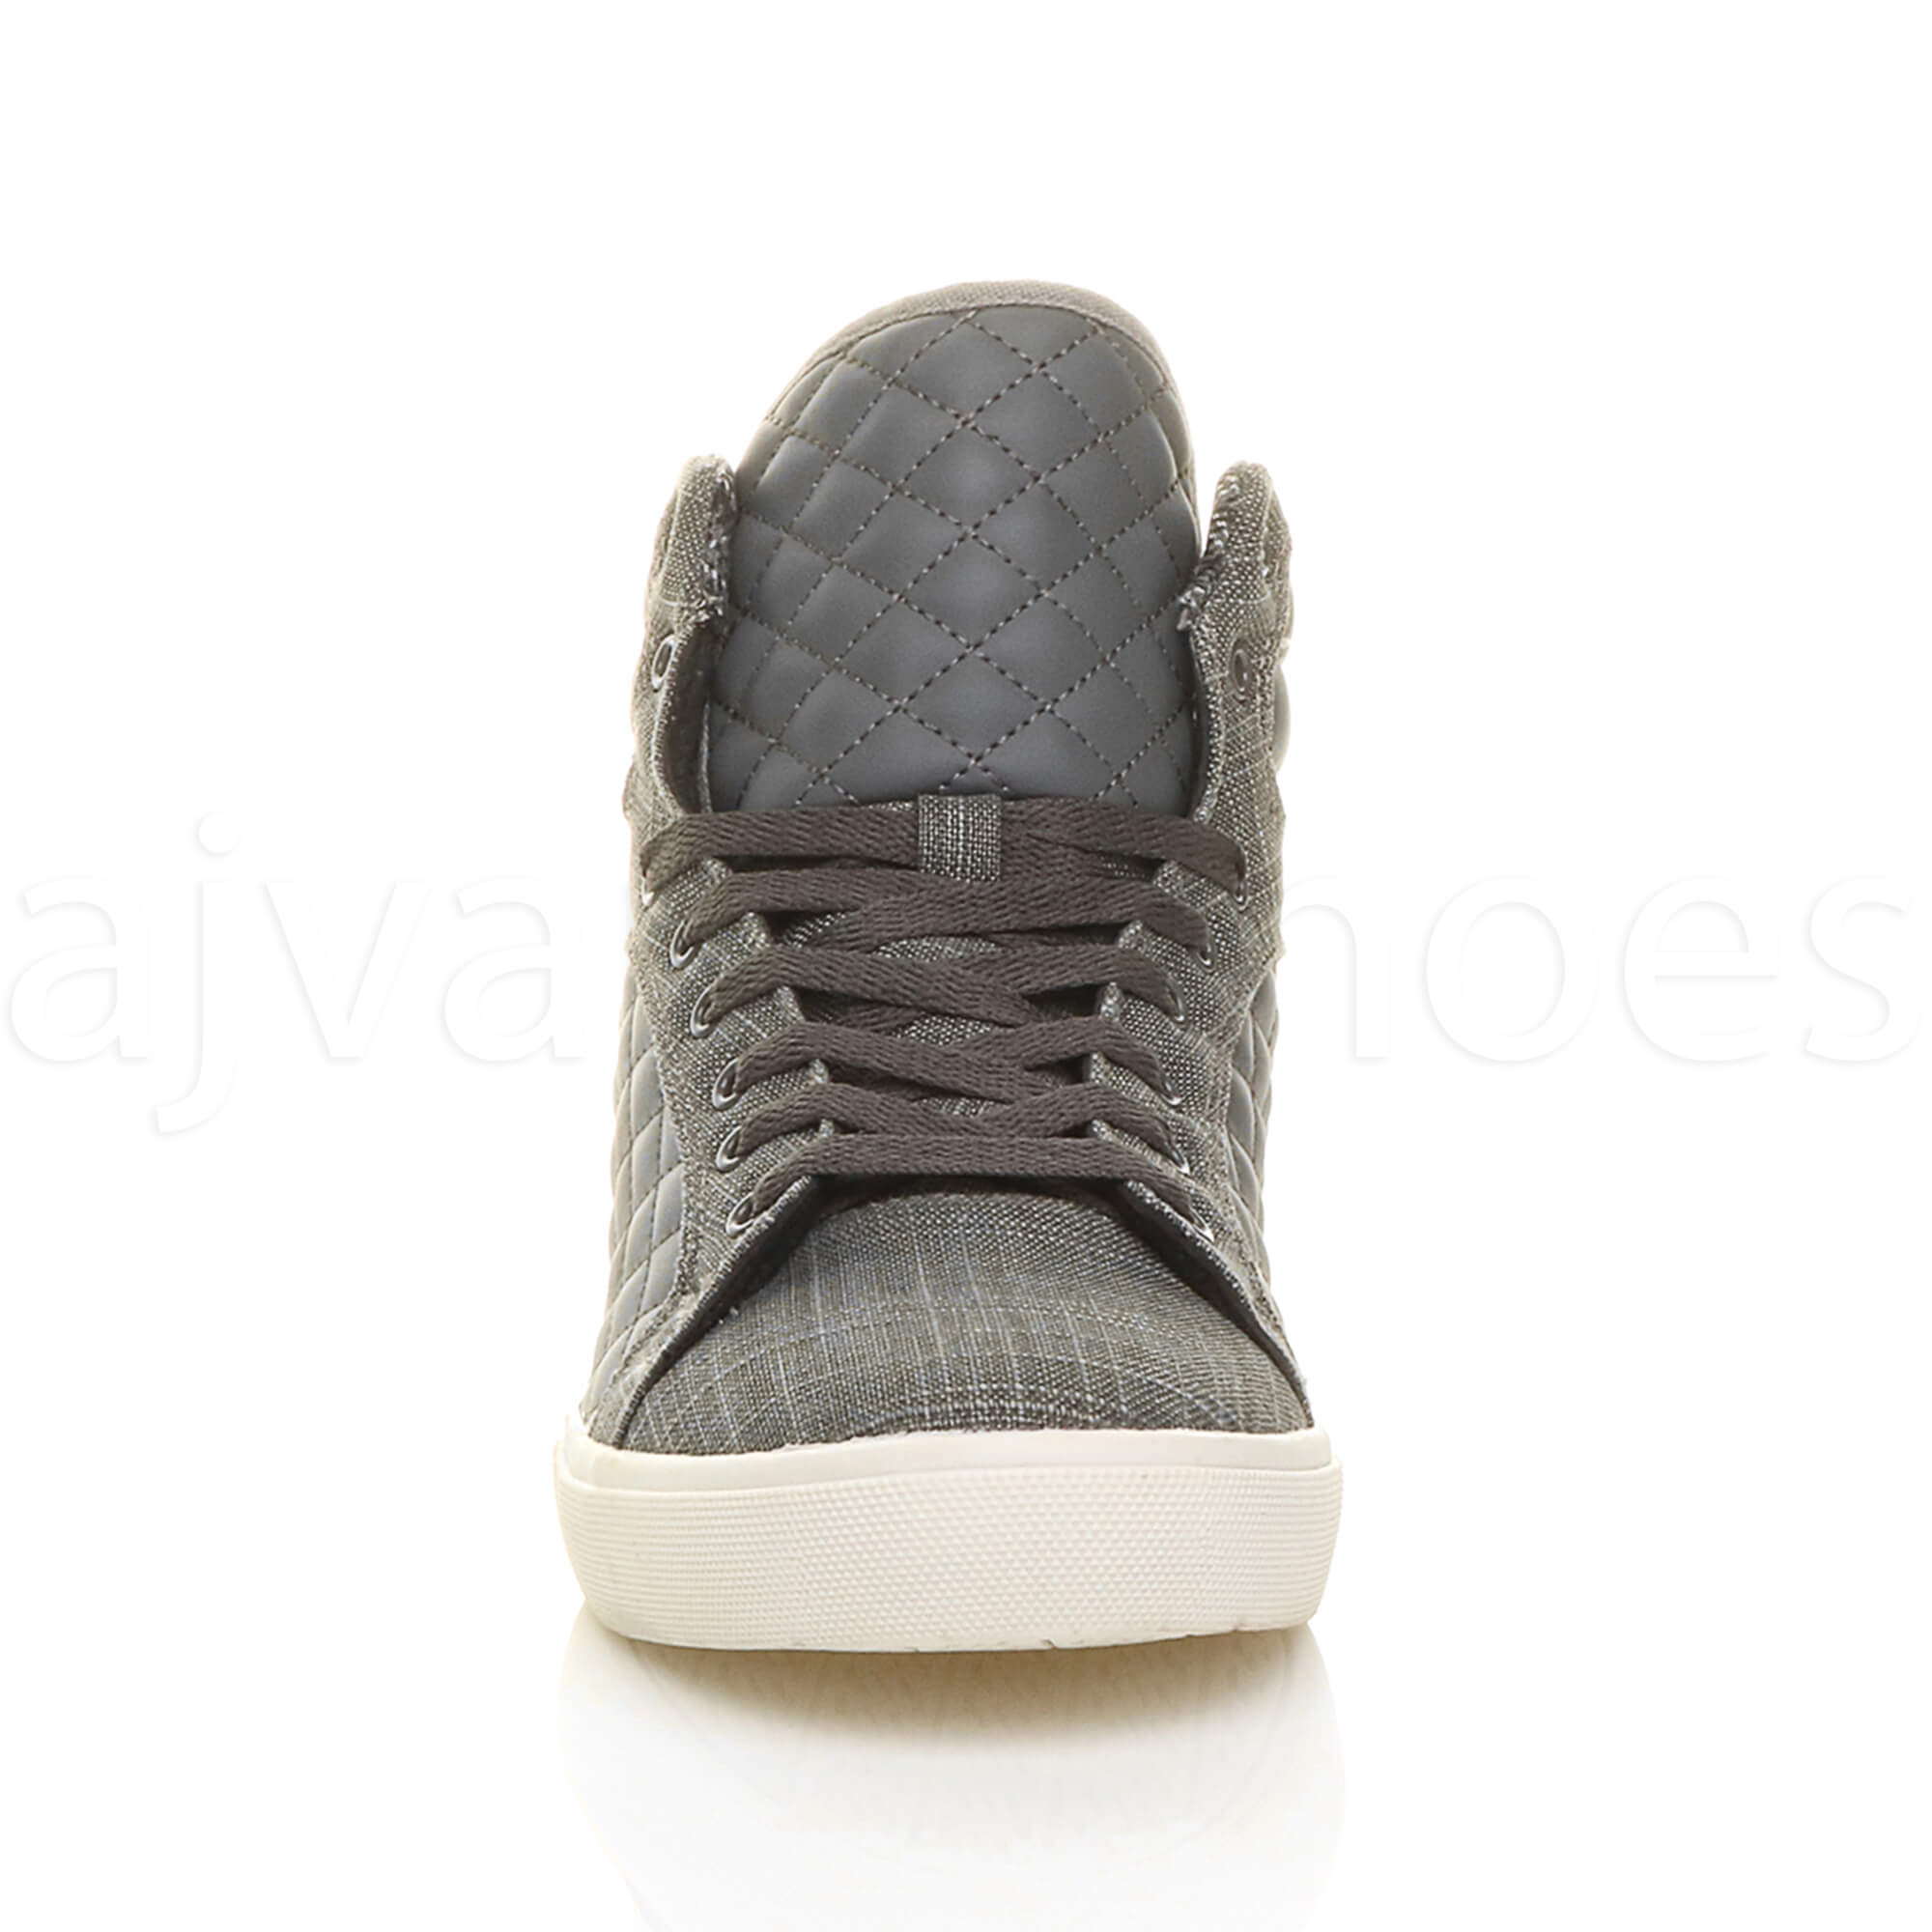 MENS-QUILTED-LACE-UP-FLAT-CASUAL-HI-HIGH-TOP-TRAINERS-SHOES-ANKLE-BOOTS-SIZE thumbnail 14